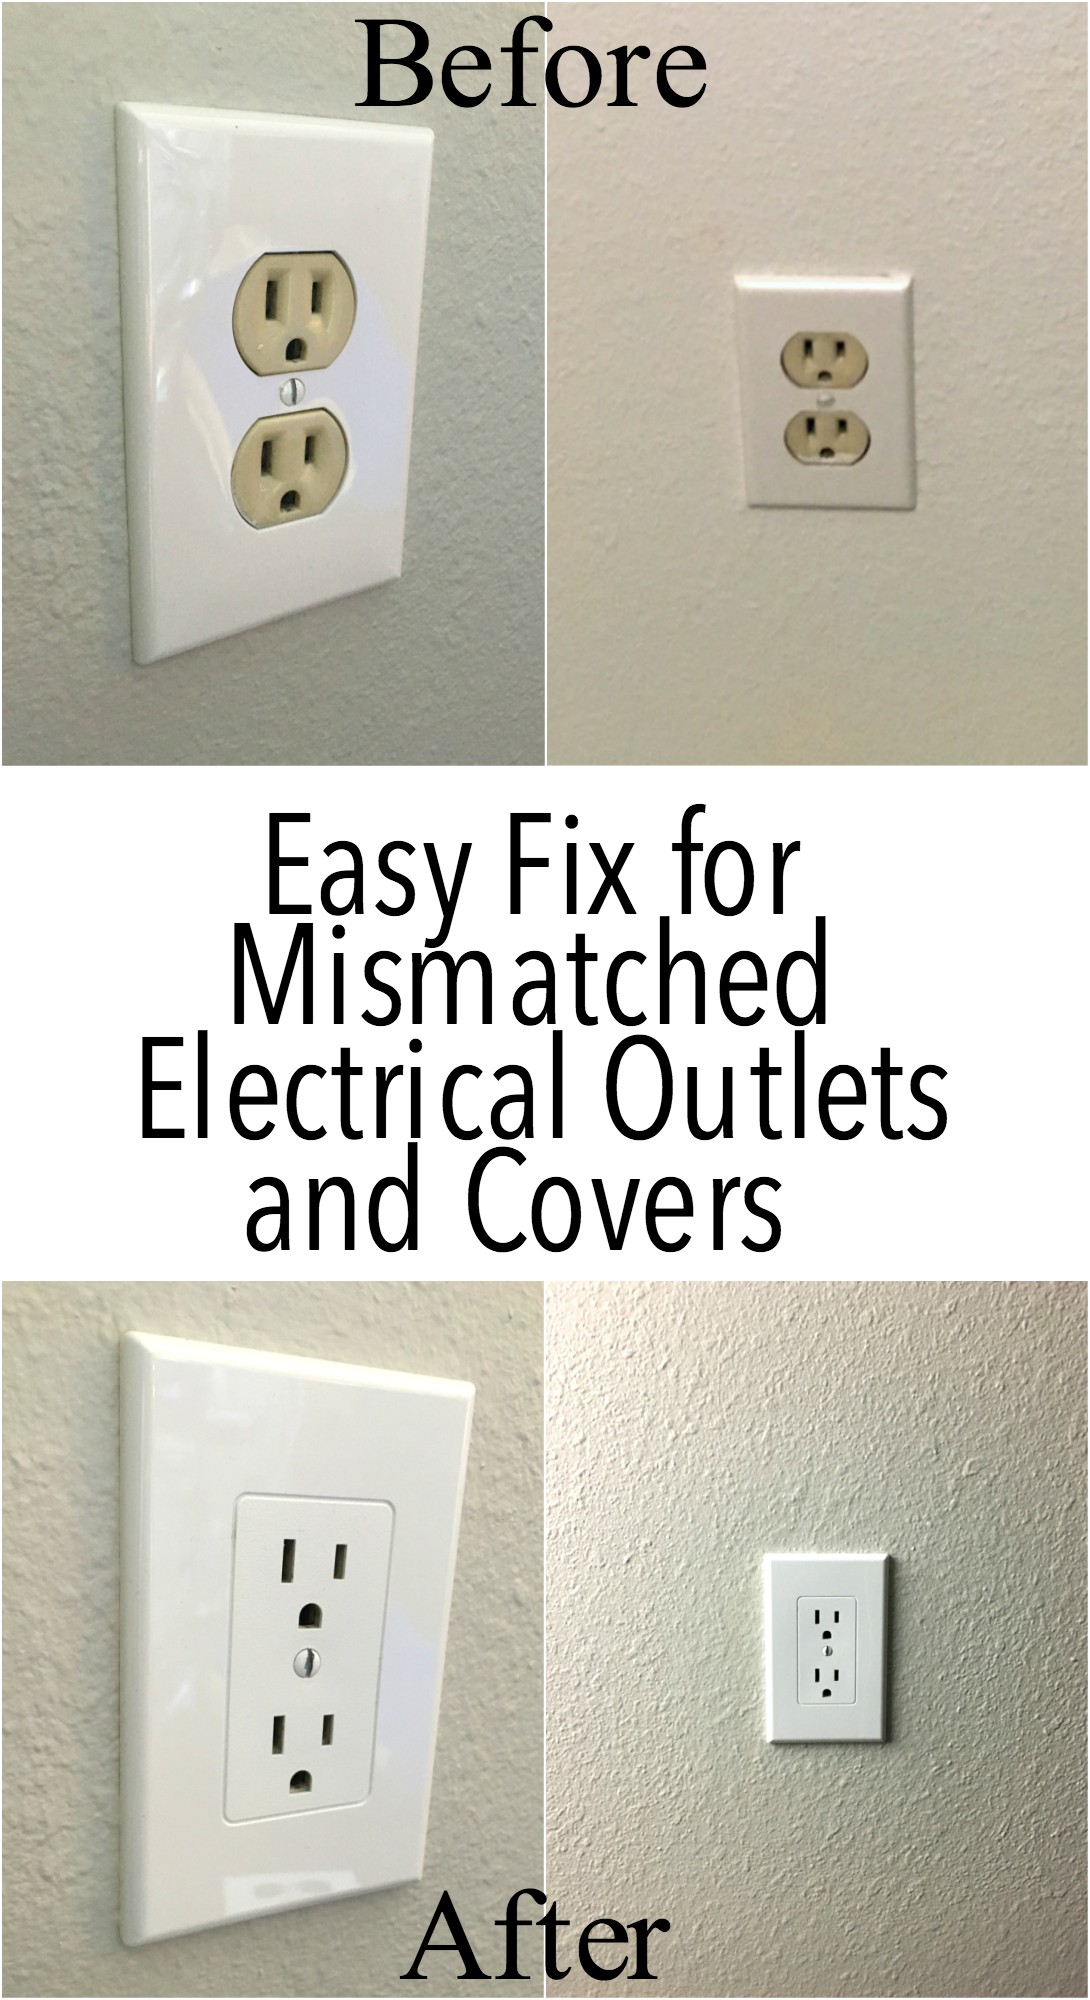 Easy Electrical Outlet Cover Tip To Fix Mismatched Wire Light Switch With My House Has The Old Almond Colored Outlets Such